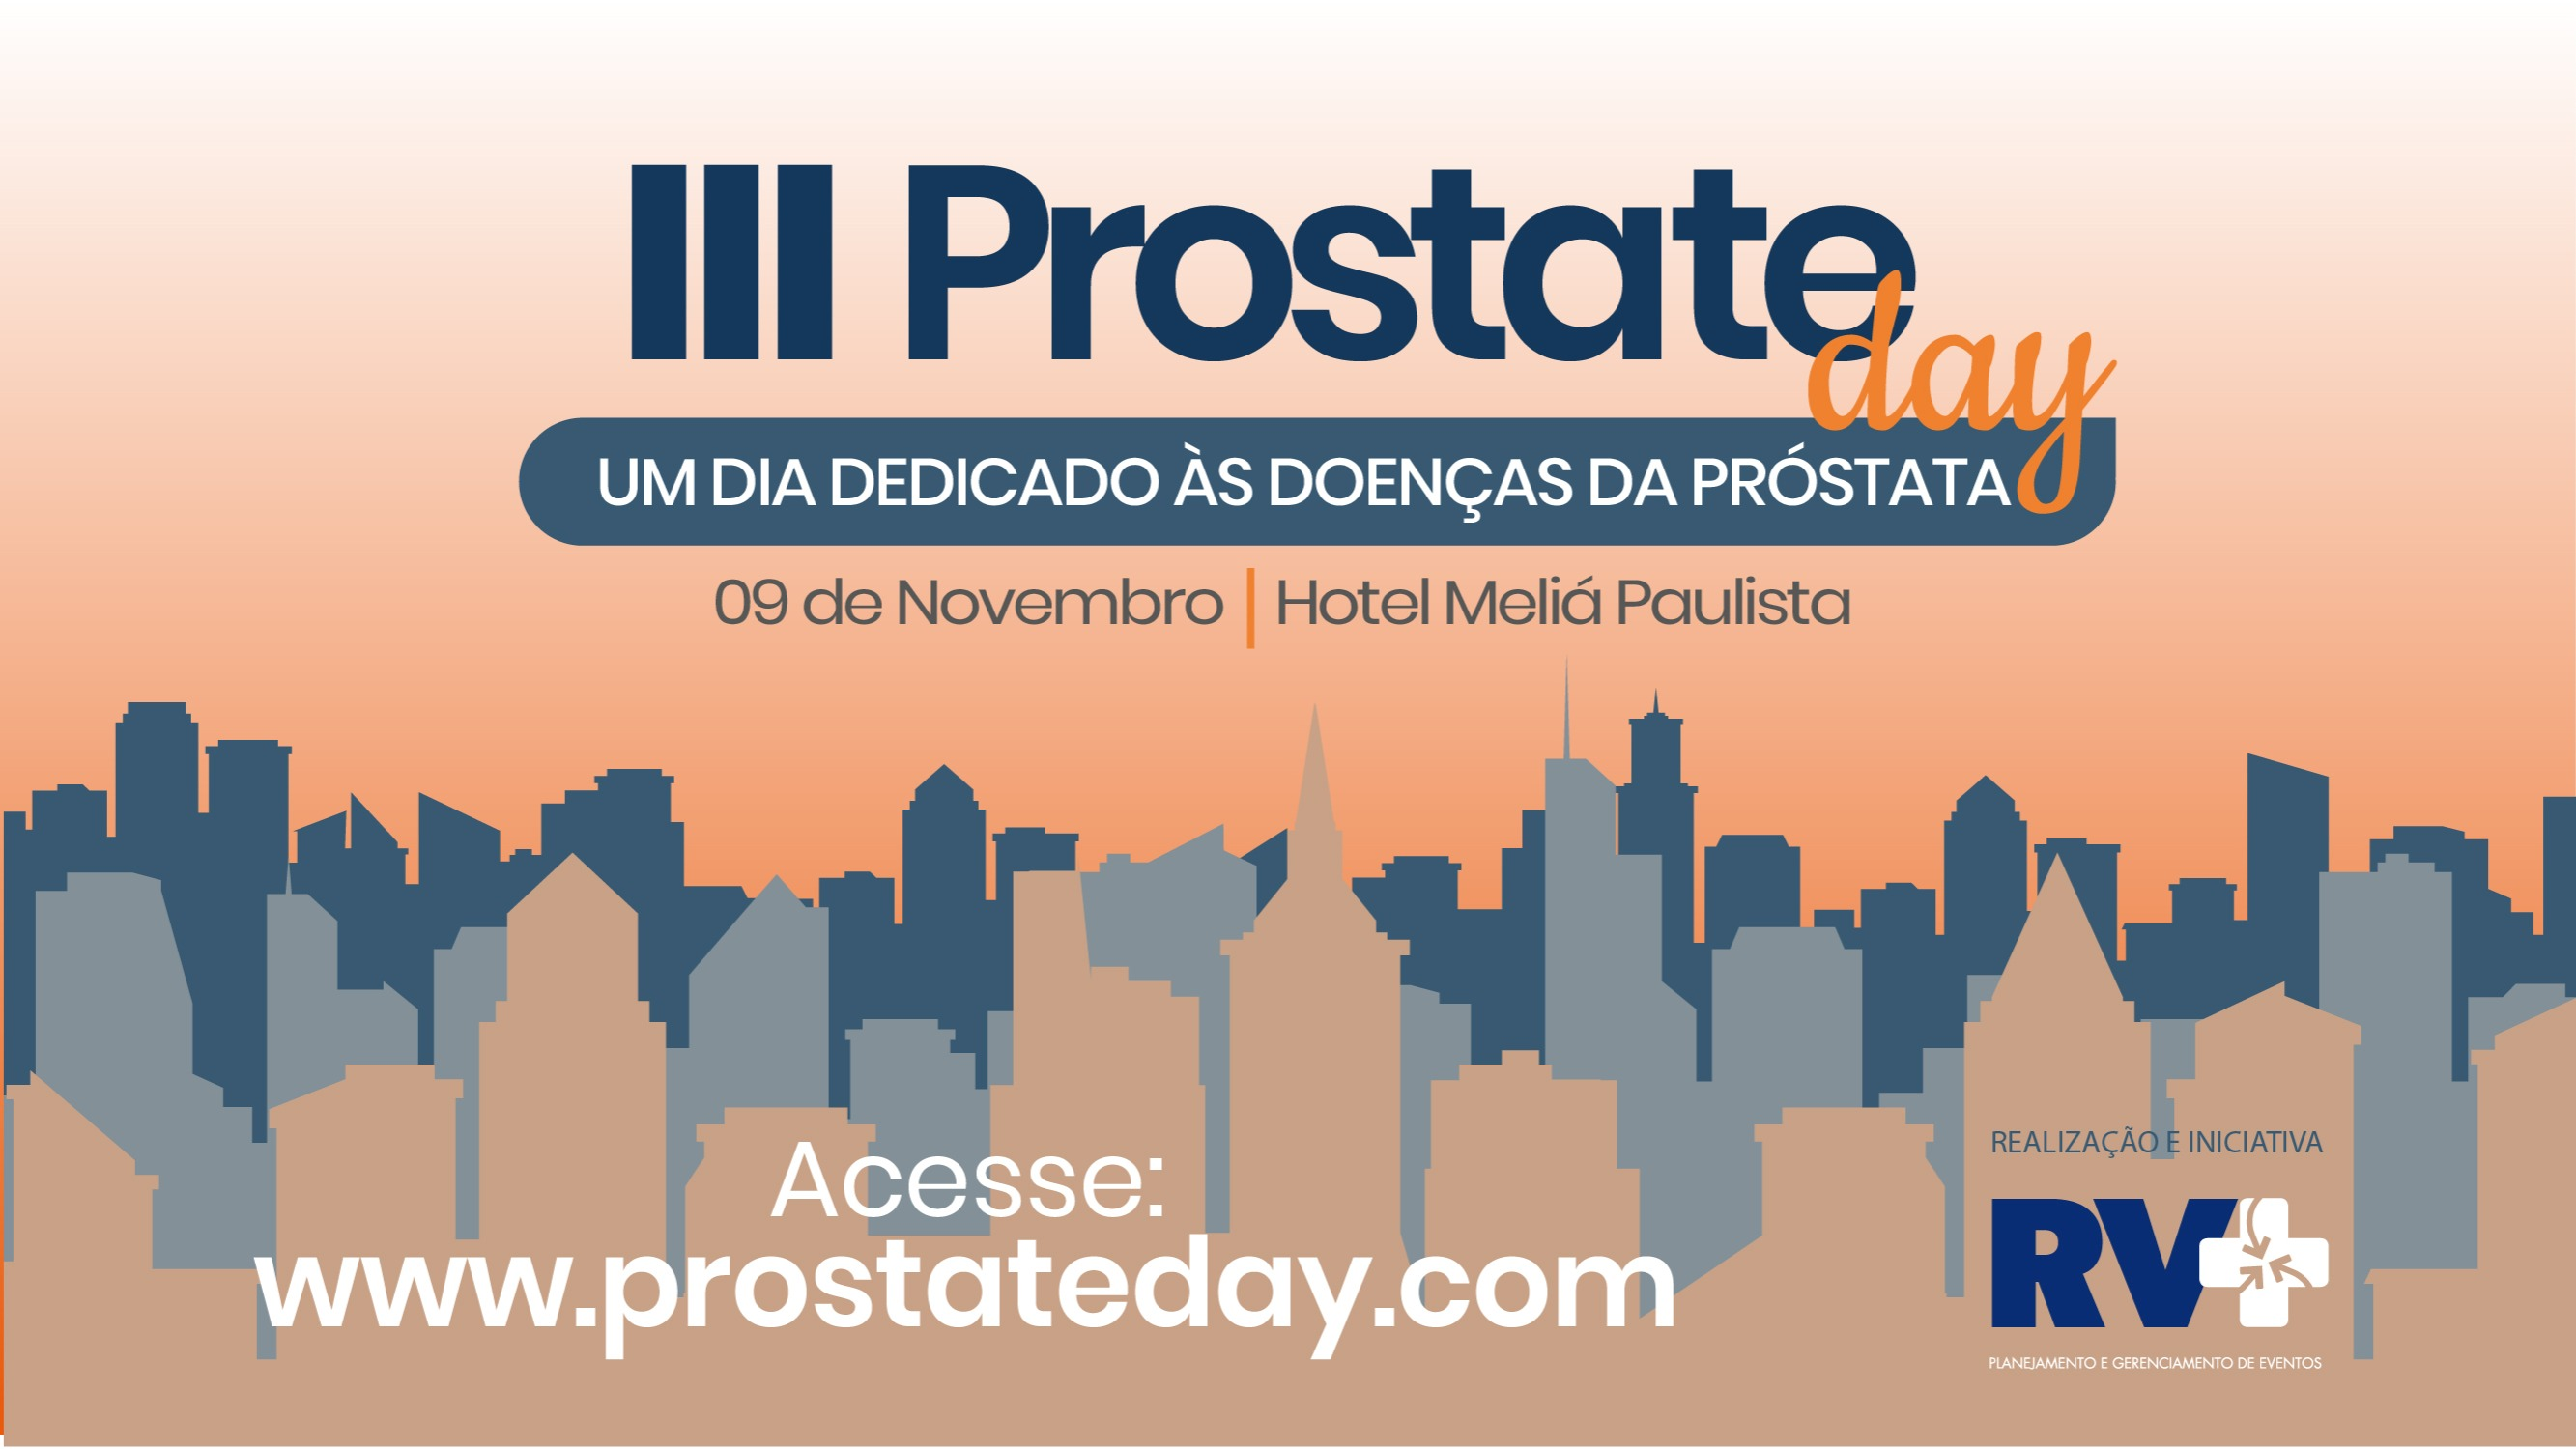 III Prostate Day